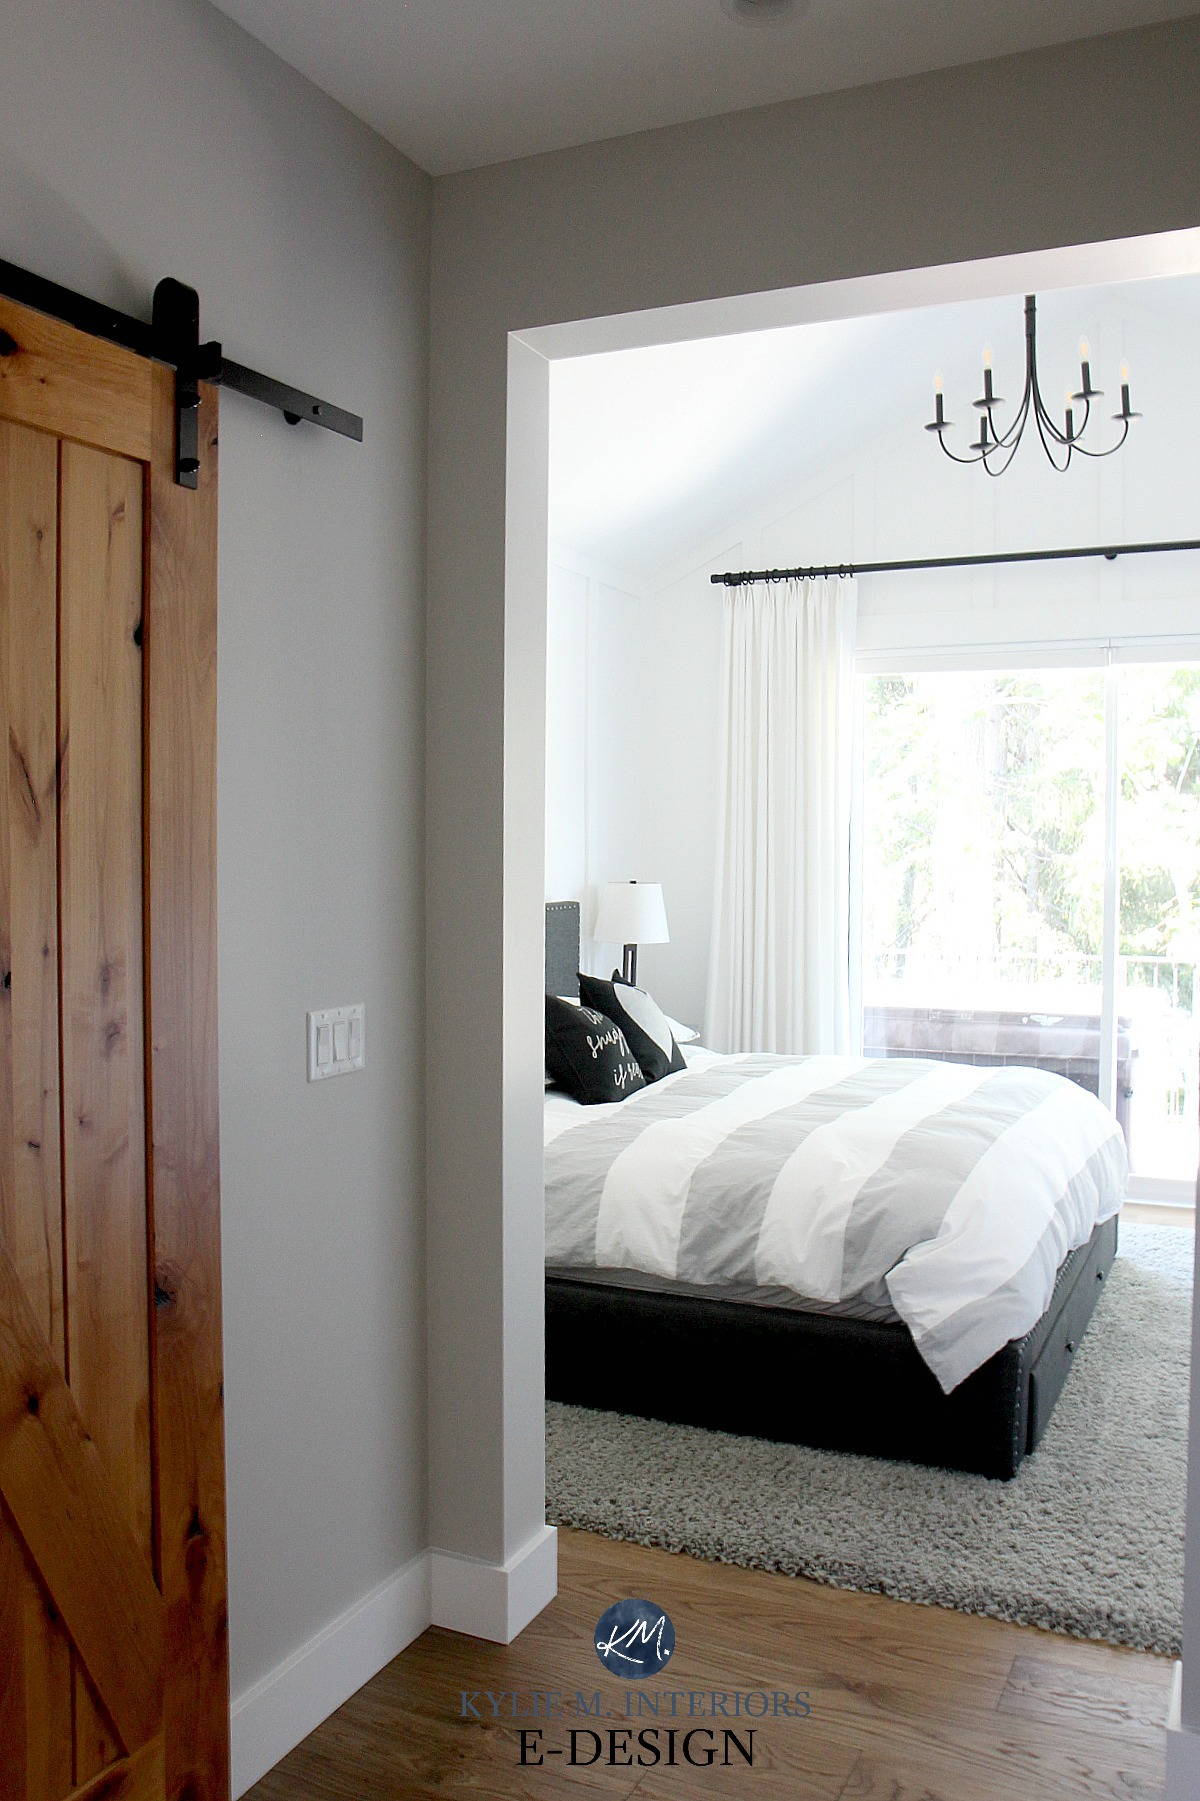 bedroom design from Kylie M Interiors